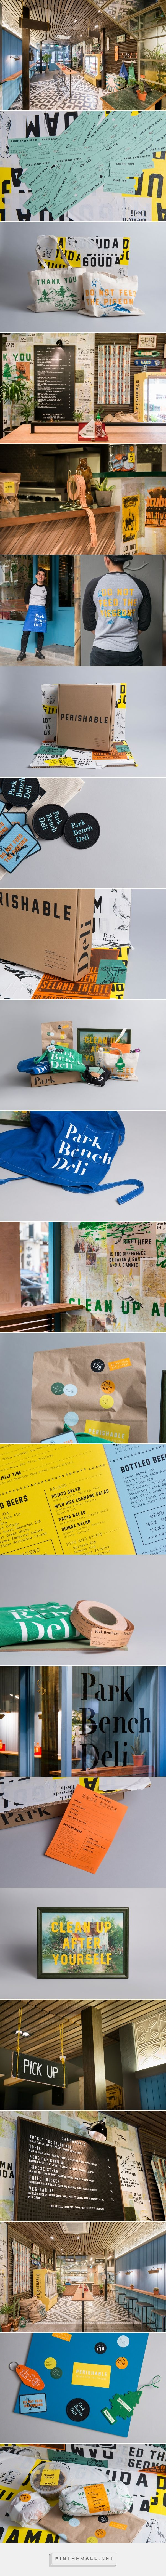 Park Bench Deli Identity & Interiors by Foreign Policy - Grits + Grids - created via https://pinthemall.net